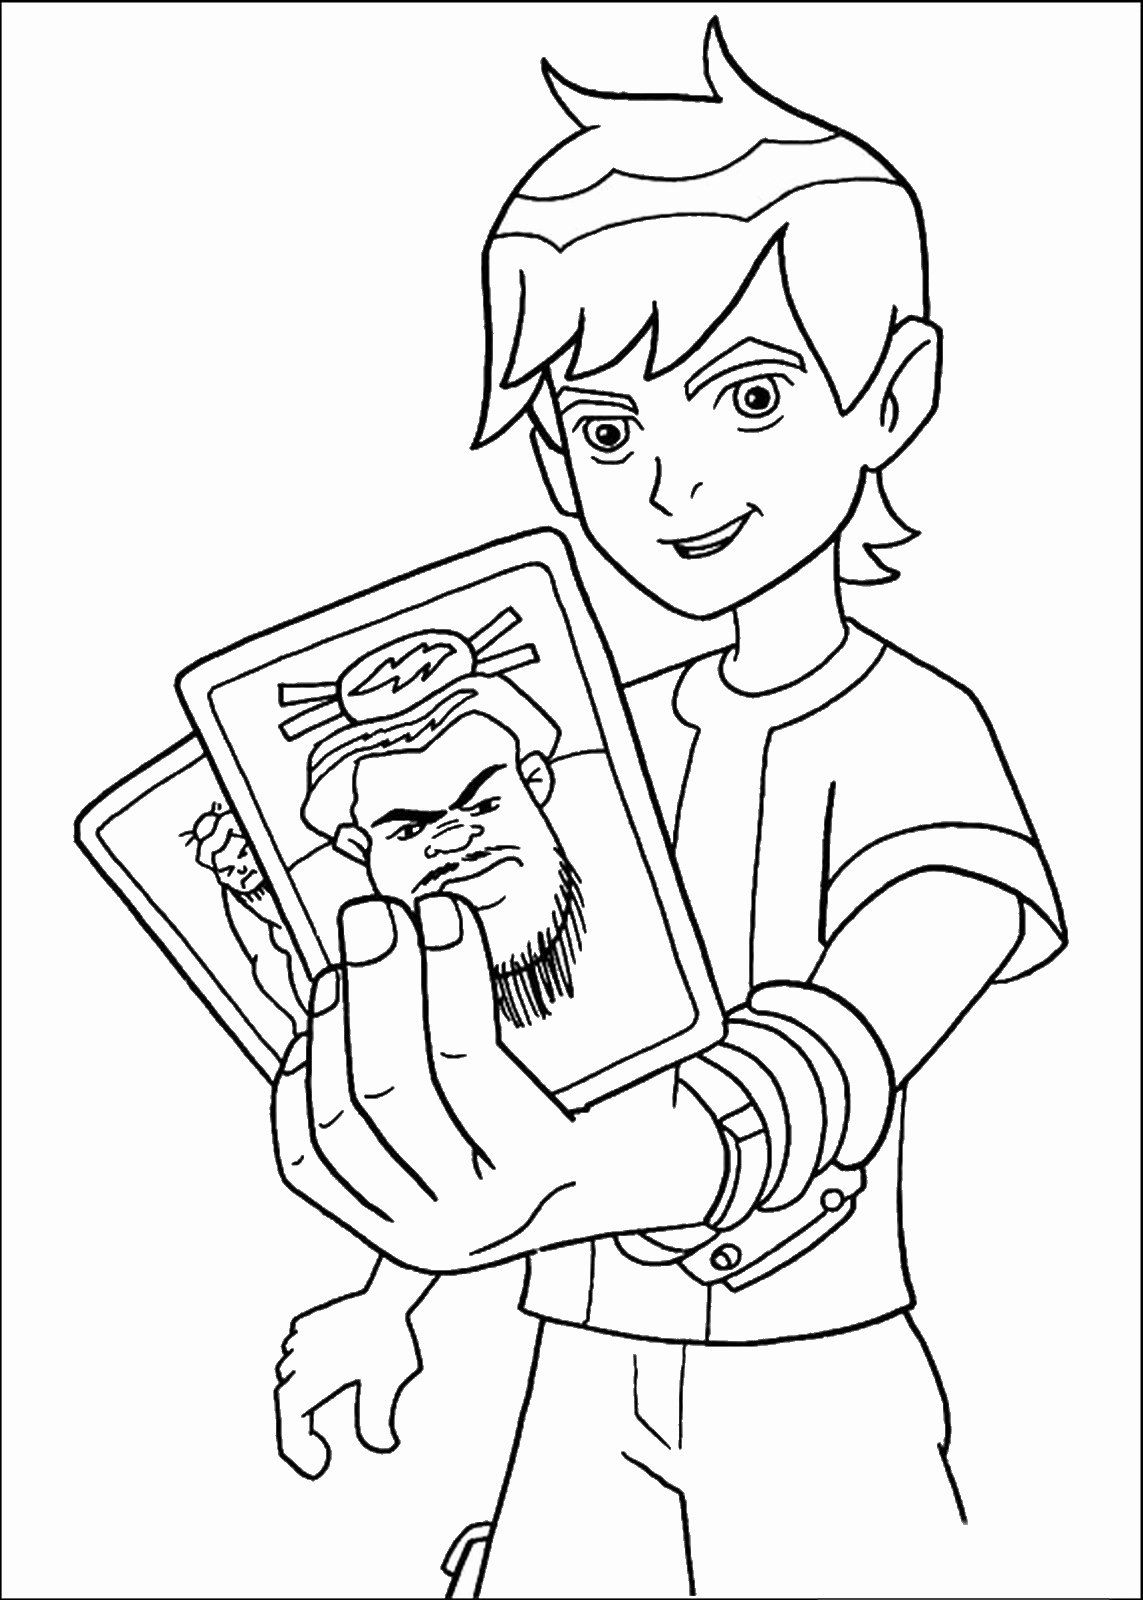 Ben 10 Coloring Page New Ben 10 Coloring Pages Cartoon Coloring Pages Coloring Pictures For Kids Coloring Books